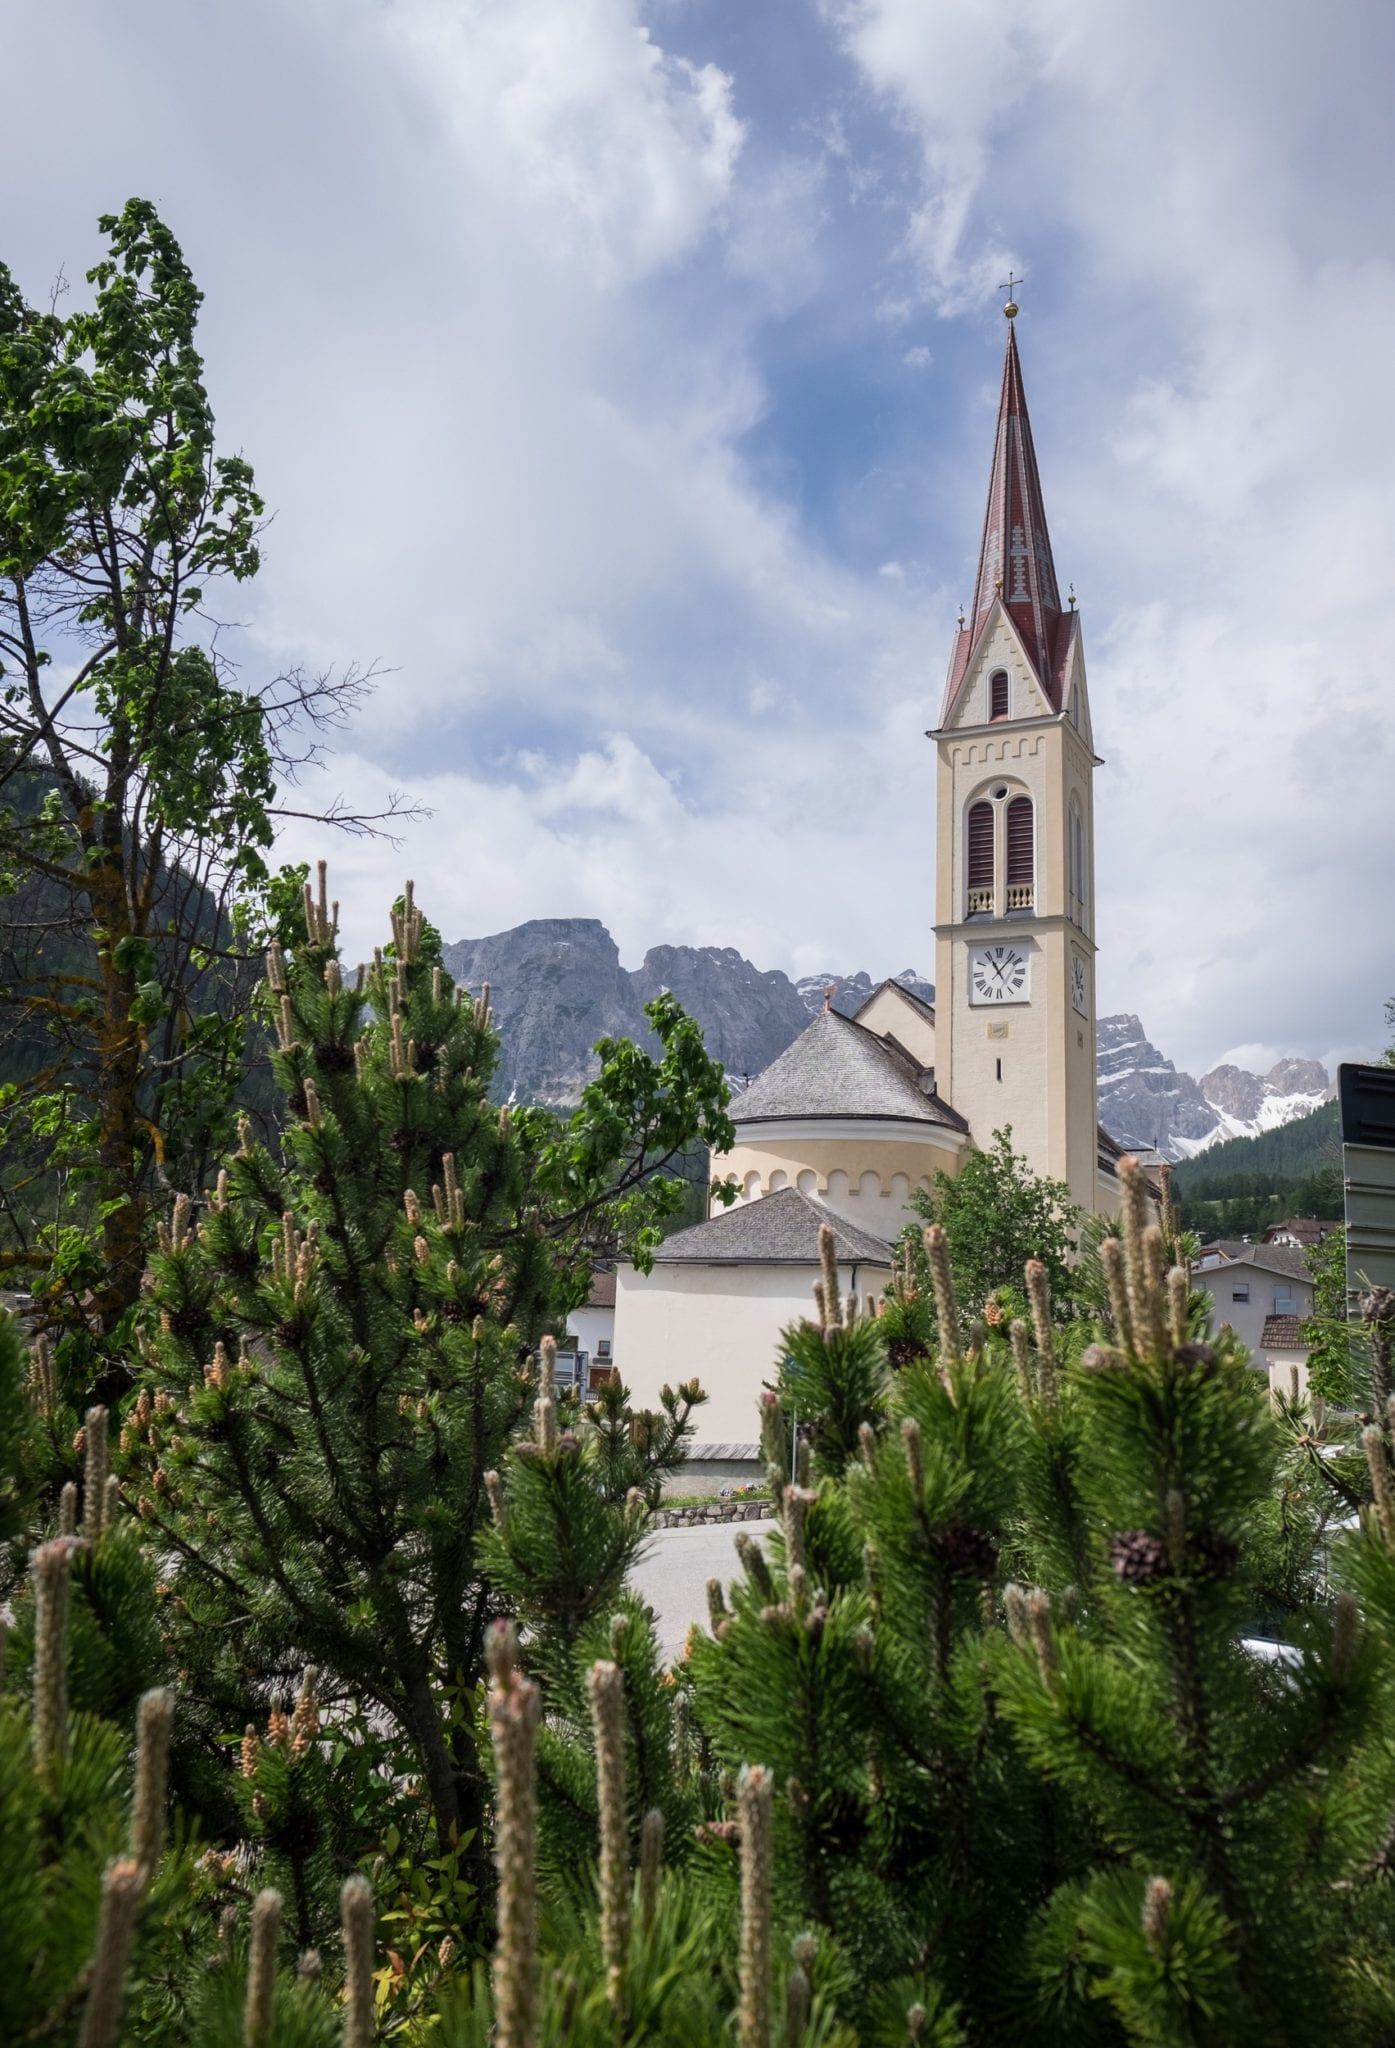 A church steeple pokes out of an Italian mountain landscape in the Dolomites. The church is surrounded by forest.